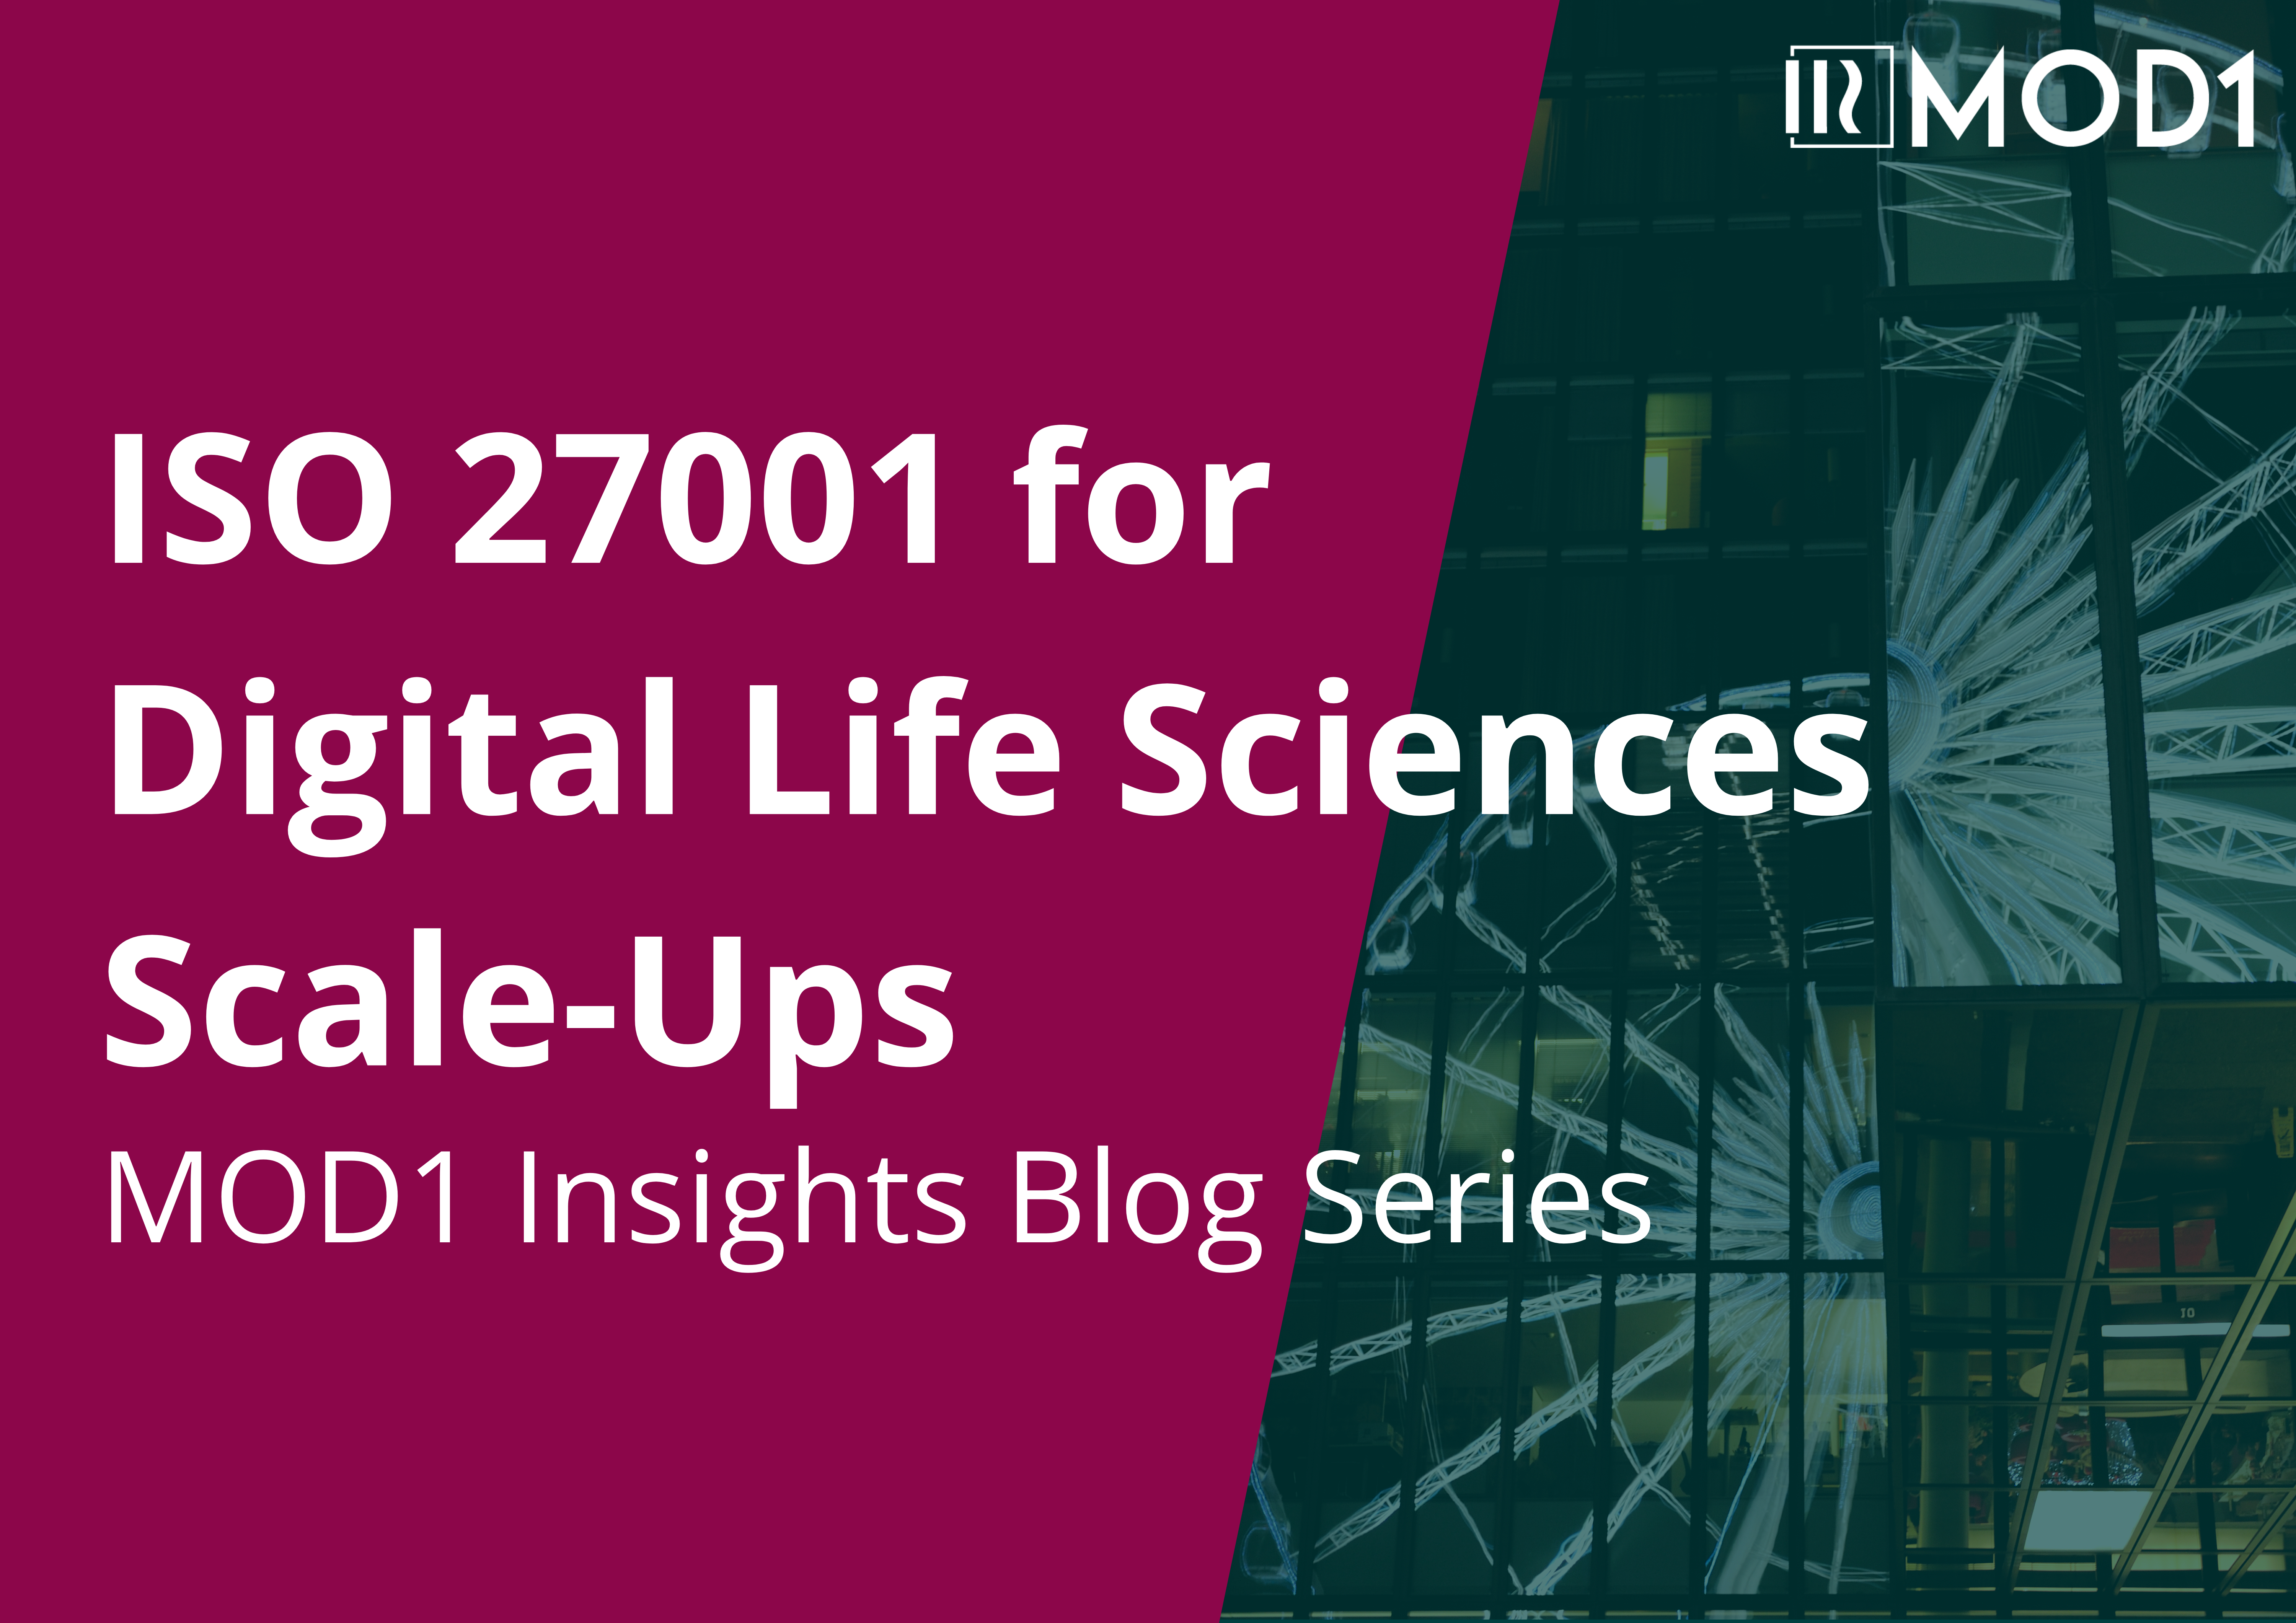 How to Assess your Certification Readiness with an ISO 27001 Gap Analysis